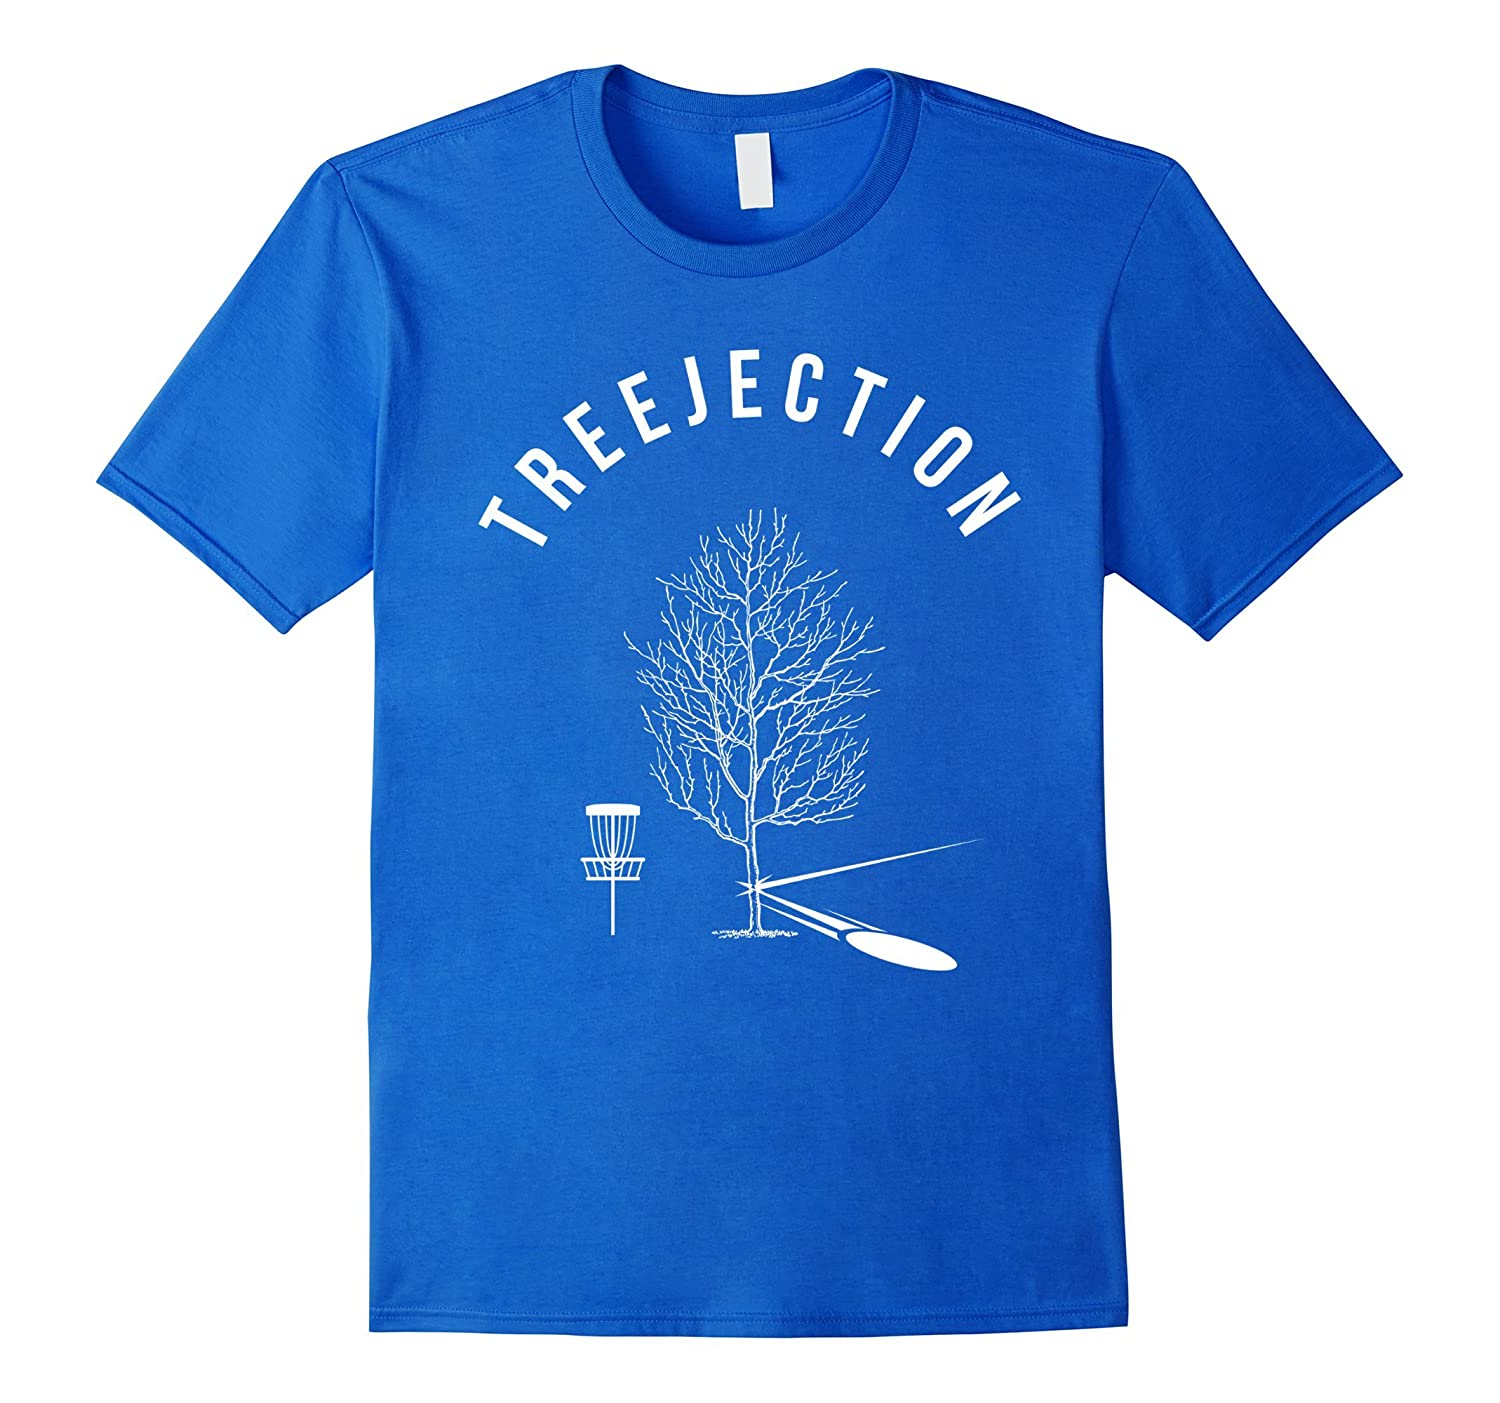 Treejection Shirt Funny Sports Player-Teeae